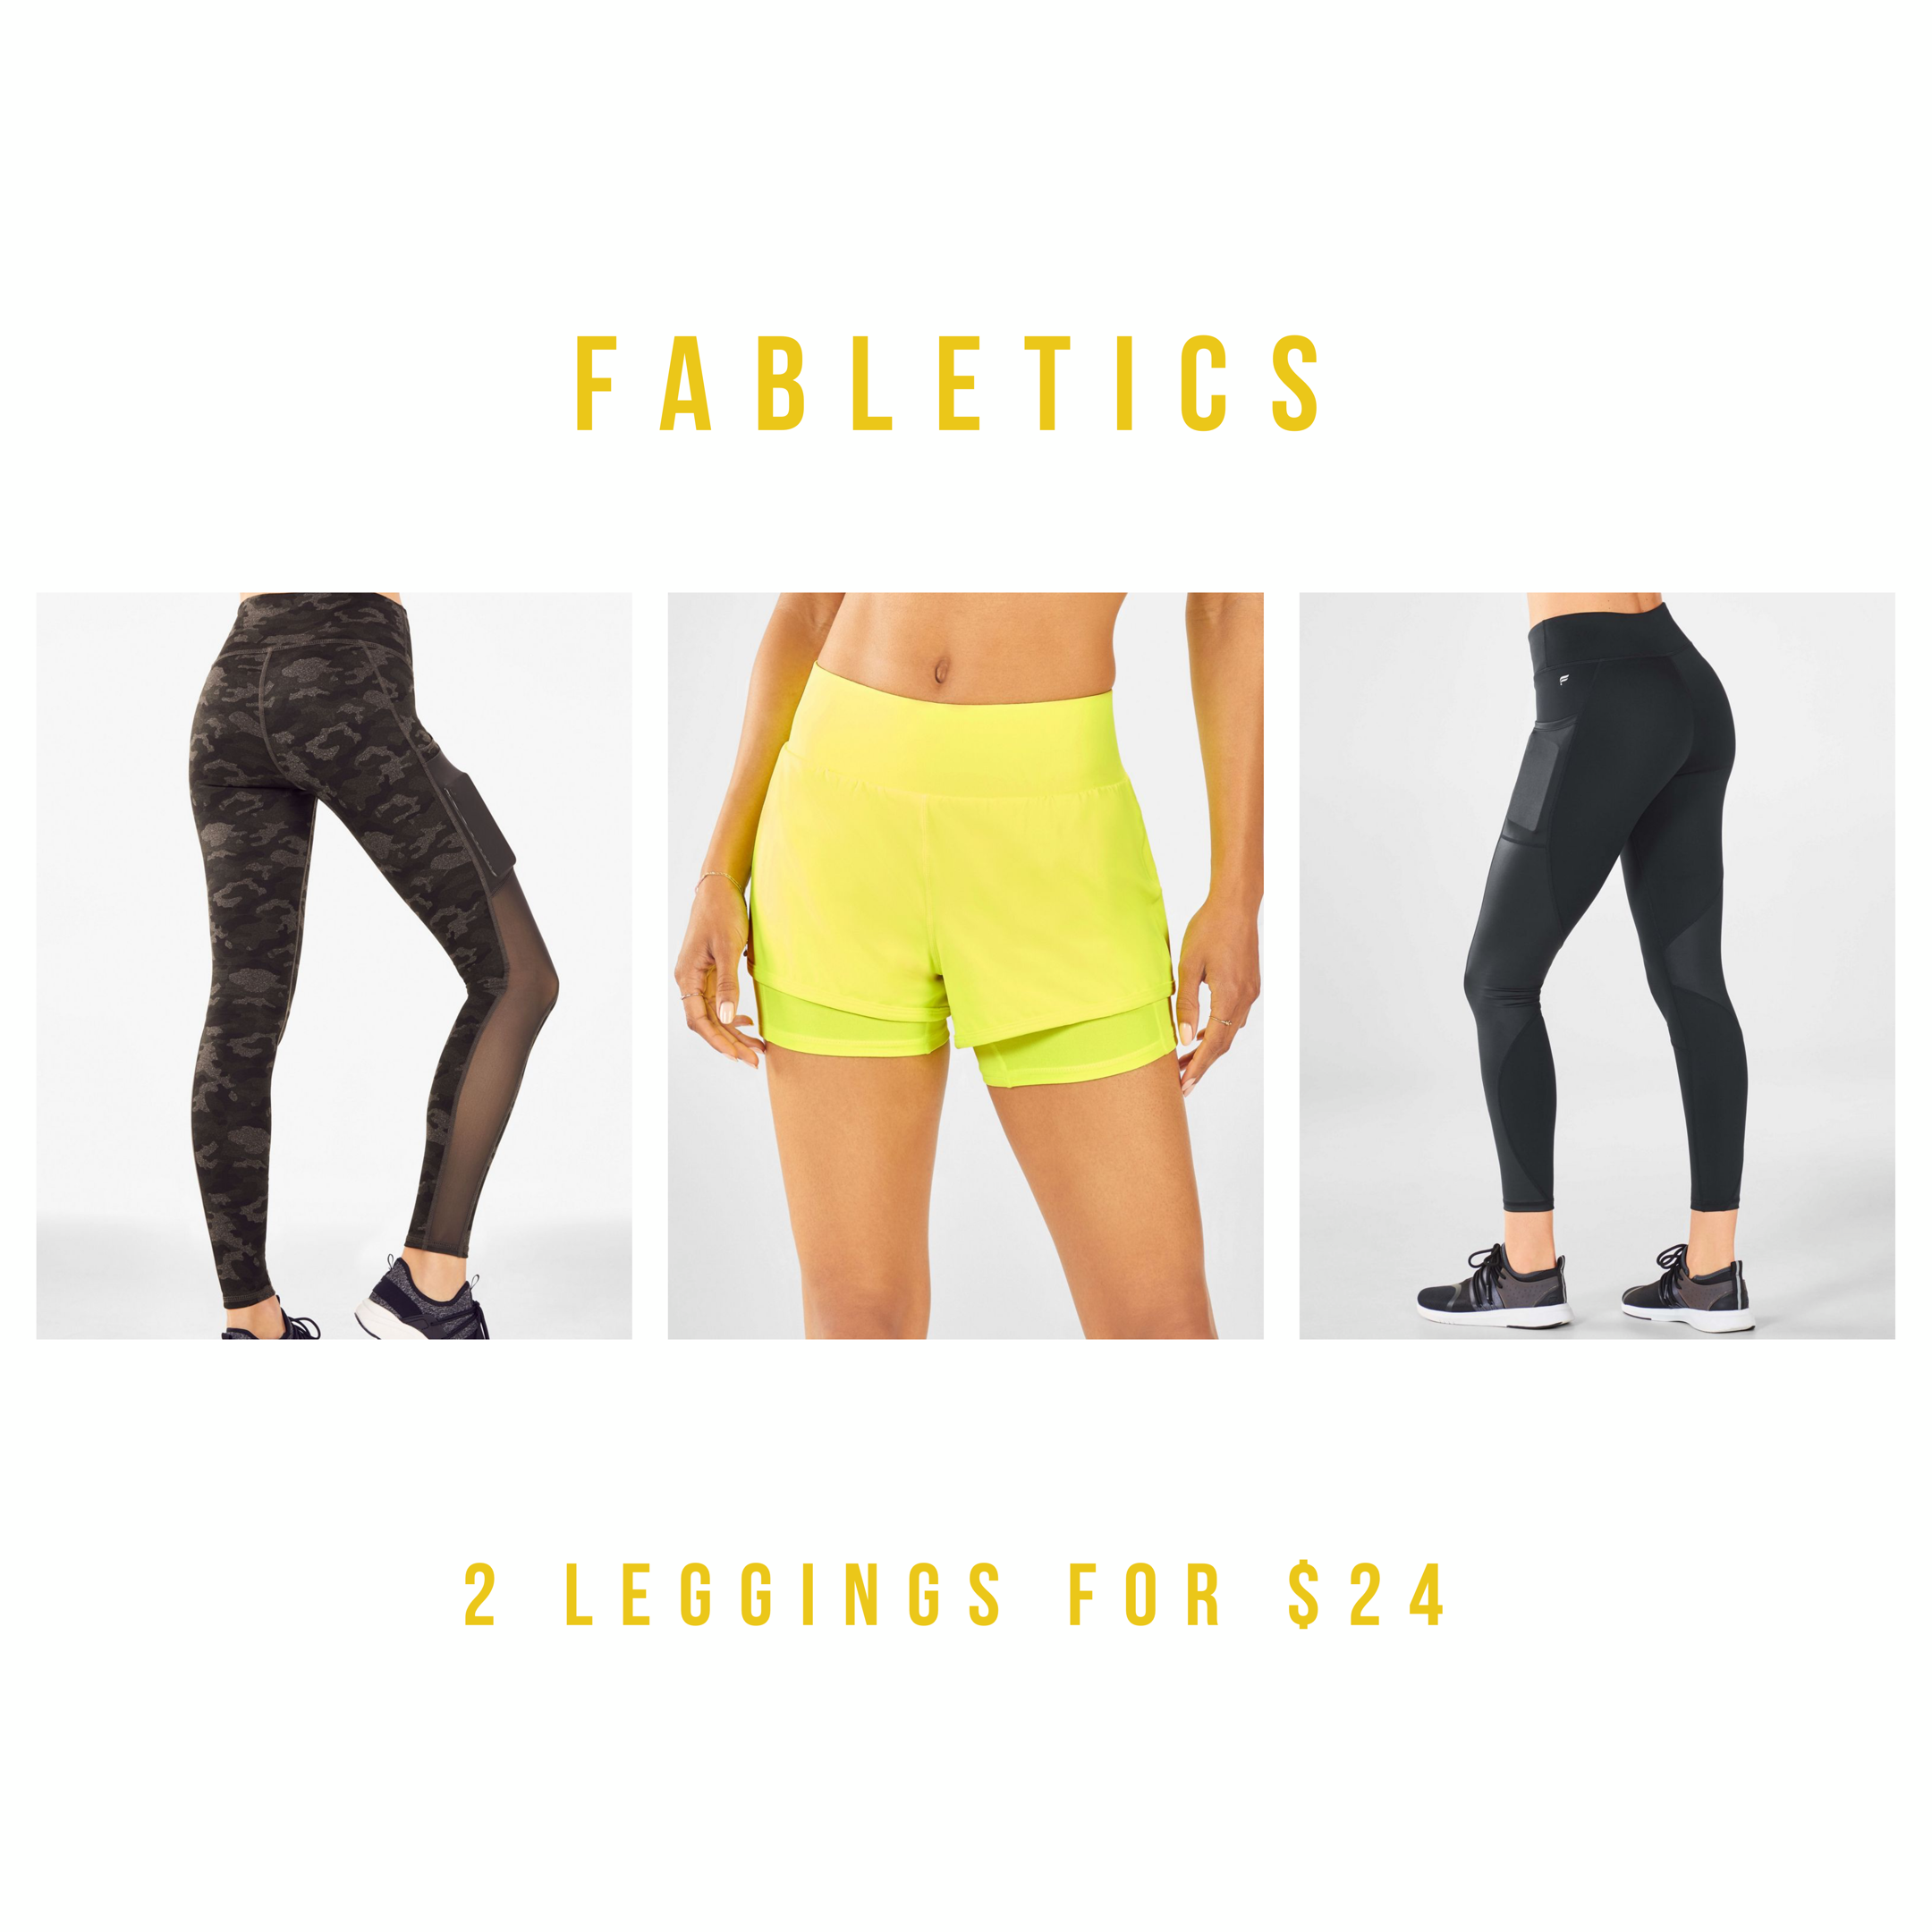 Click here to get two pairs of Fabletics leggings for $24.